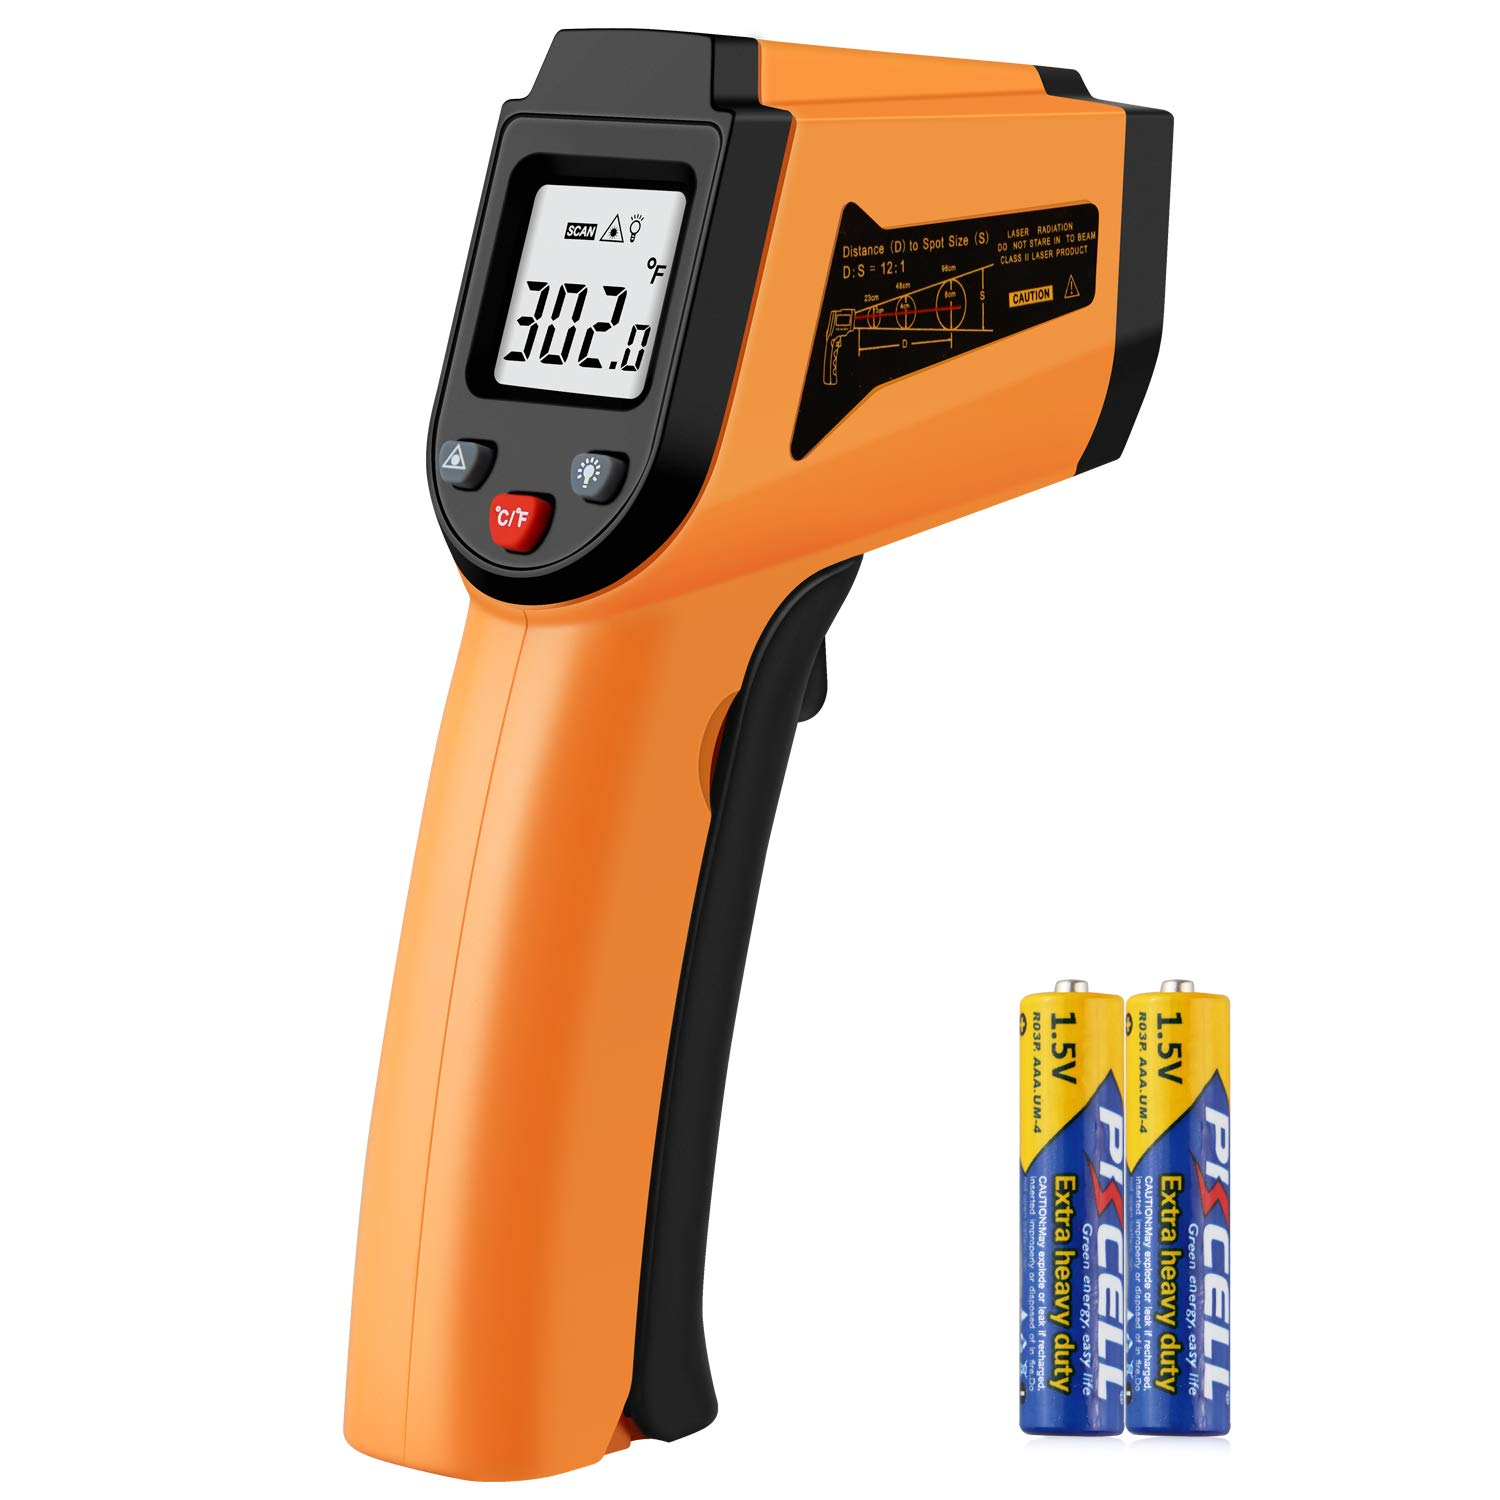 Infrared Thermometer, Non-Contact Digital Laser Infrared Thermometer Temperature Gun -50°C to 400°C(-58°F to 752°F) with LCD Display by PAPOGO